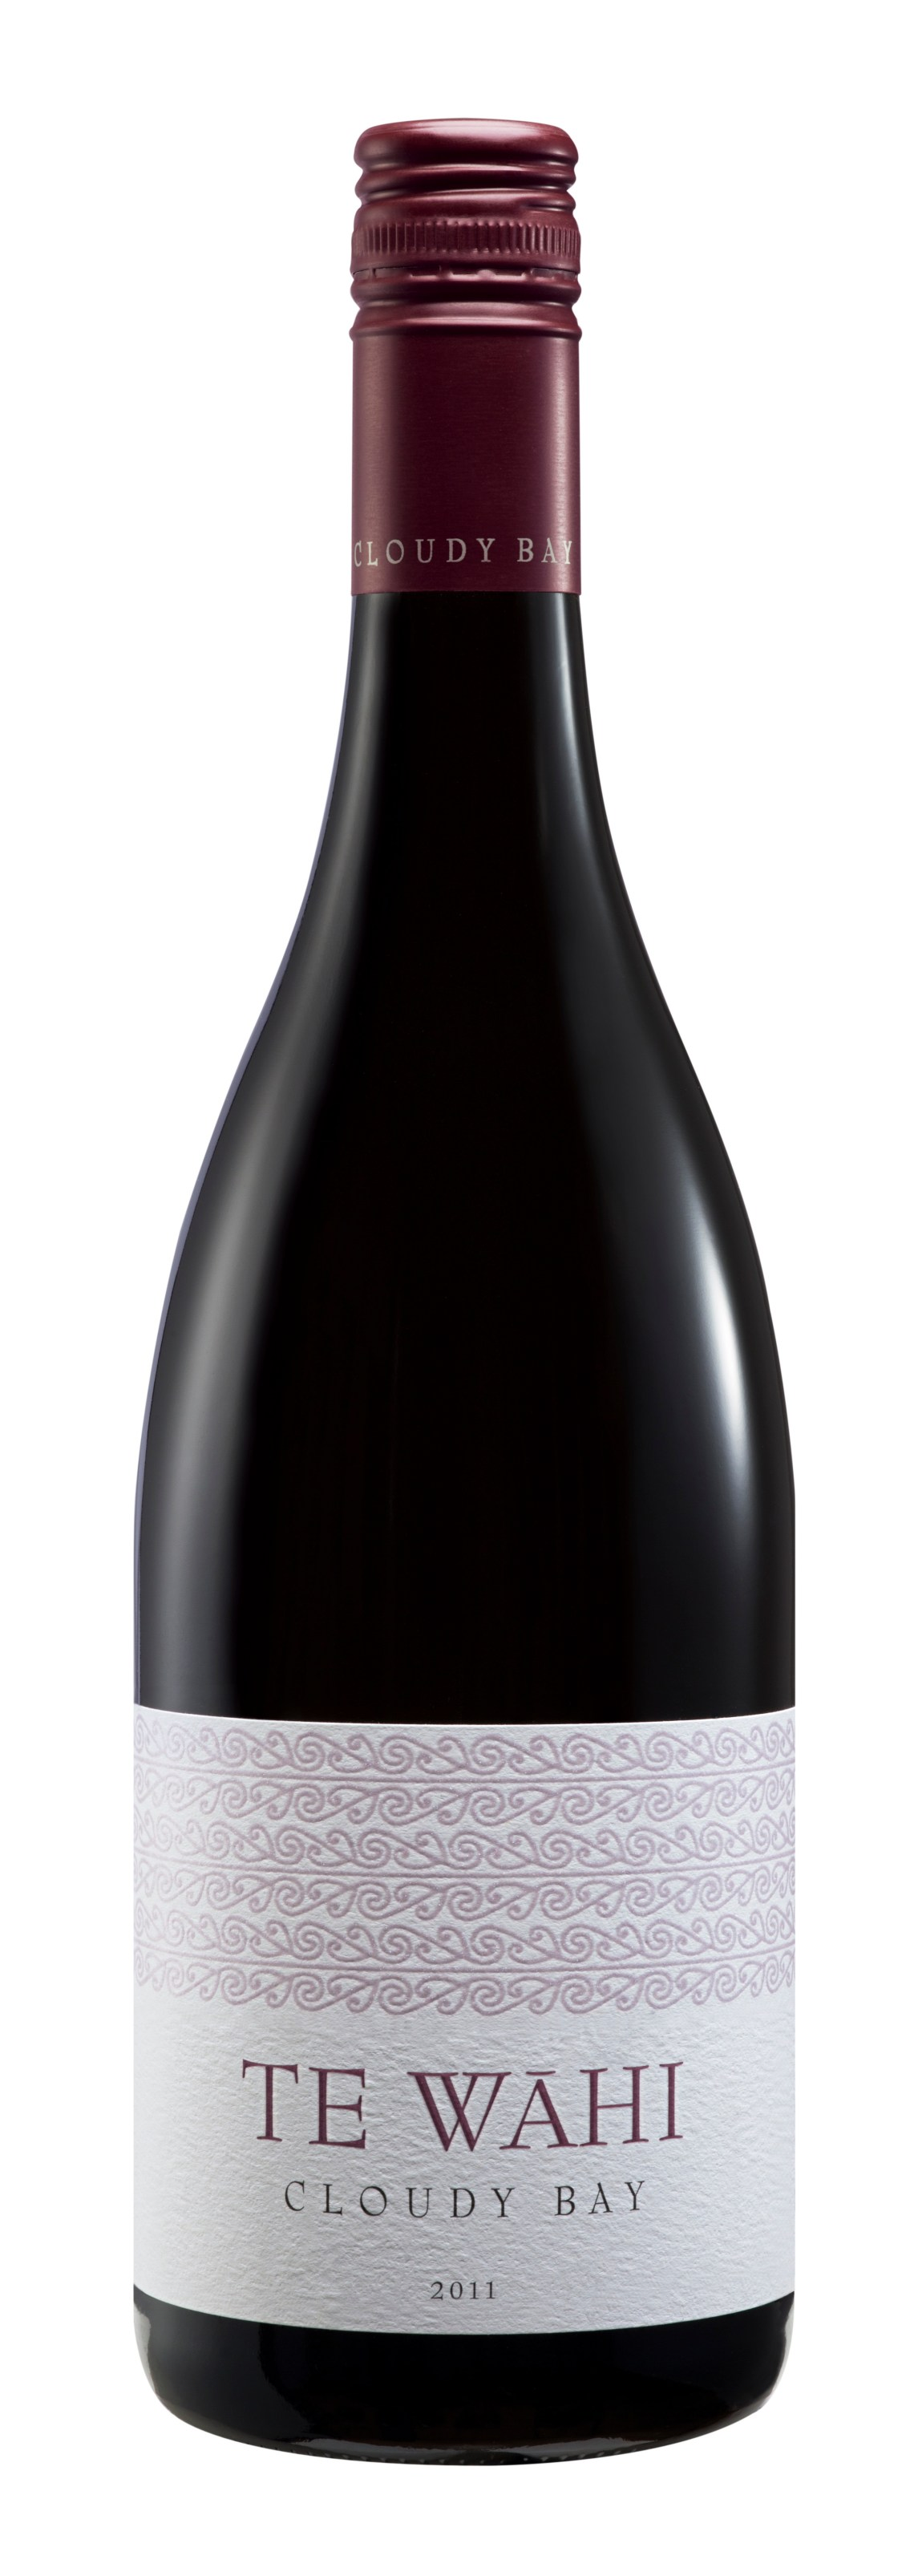 2011 Cloudy Bay Te Wahi Pinot Noir Central Otago